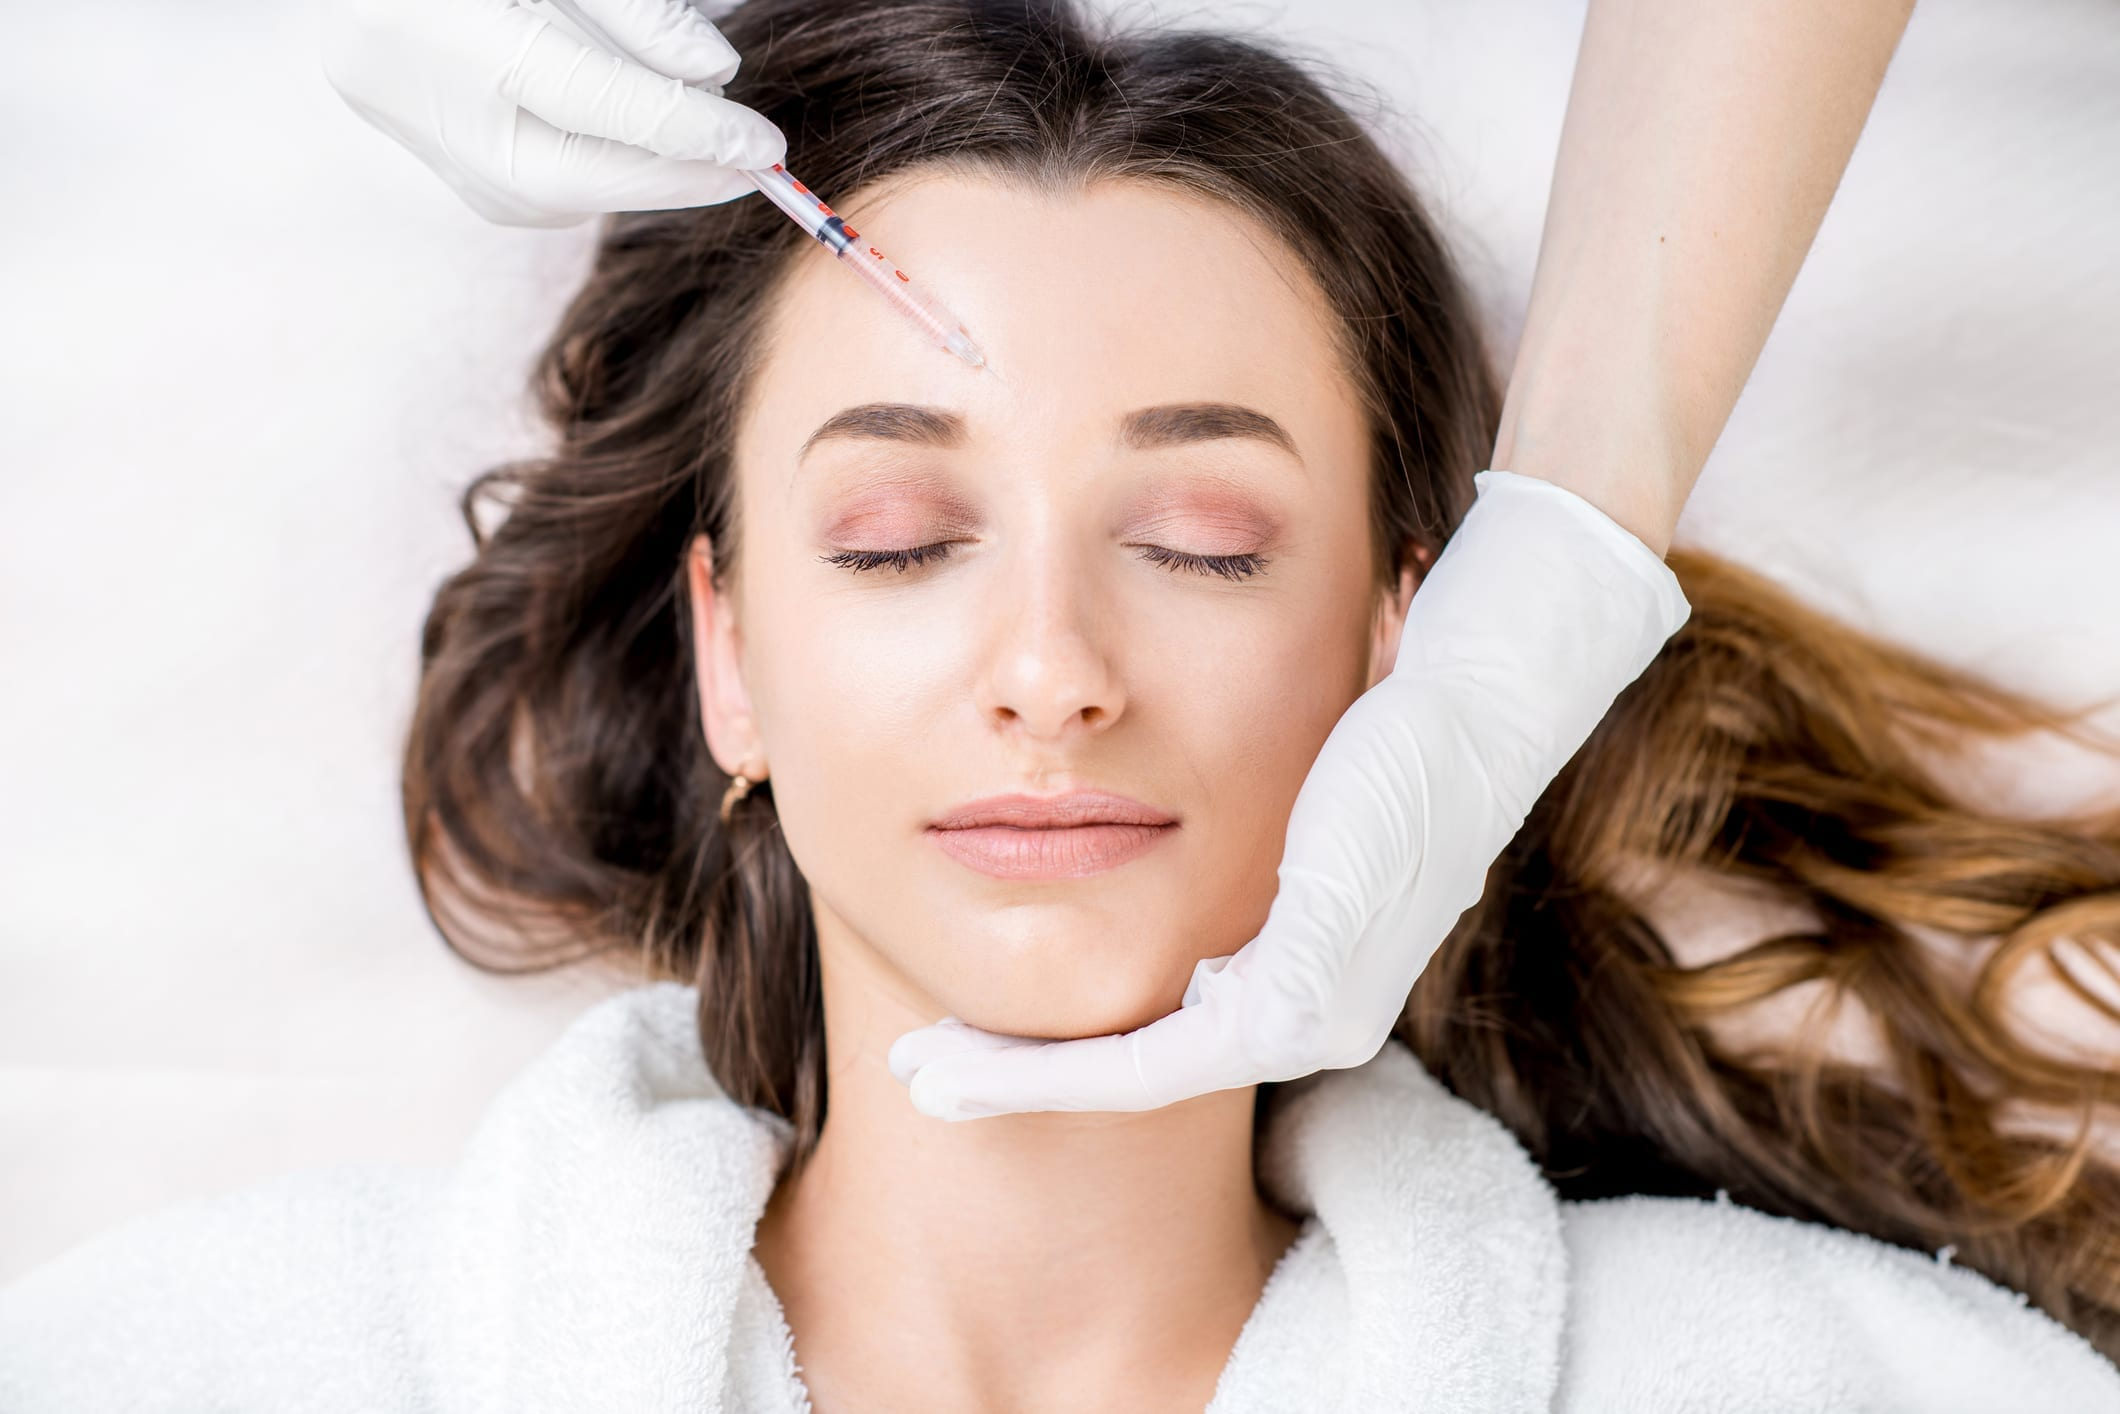 dermal fillers in the forehead